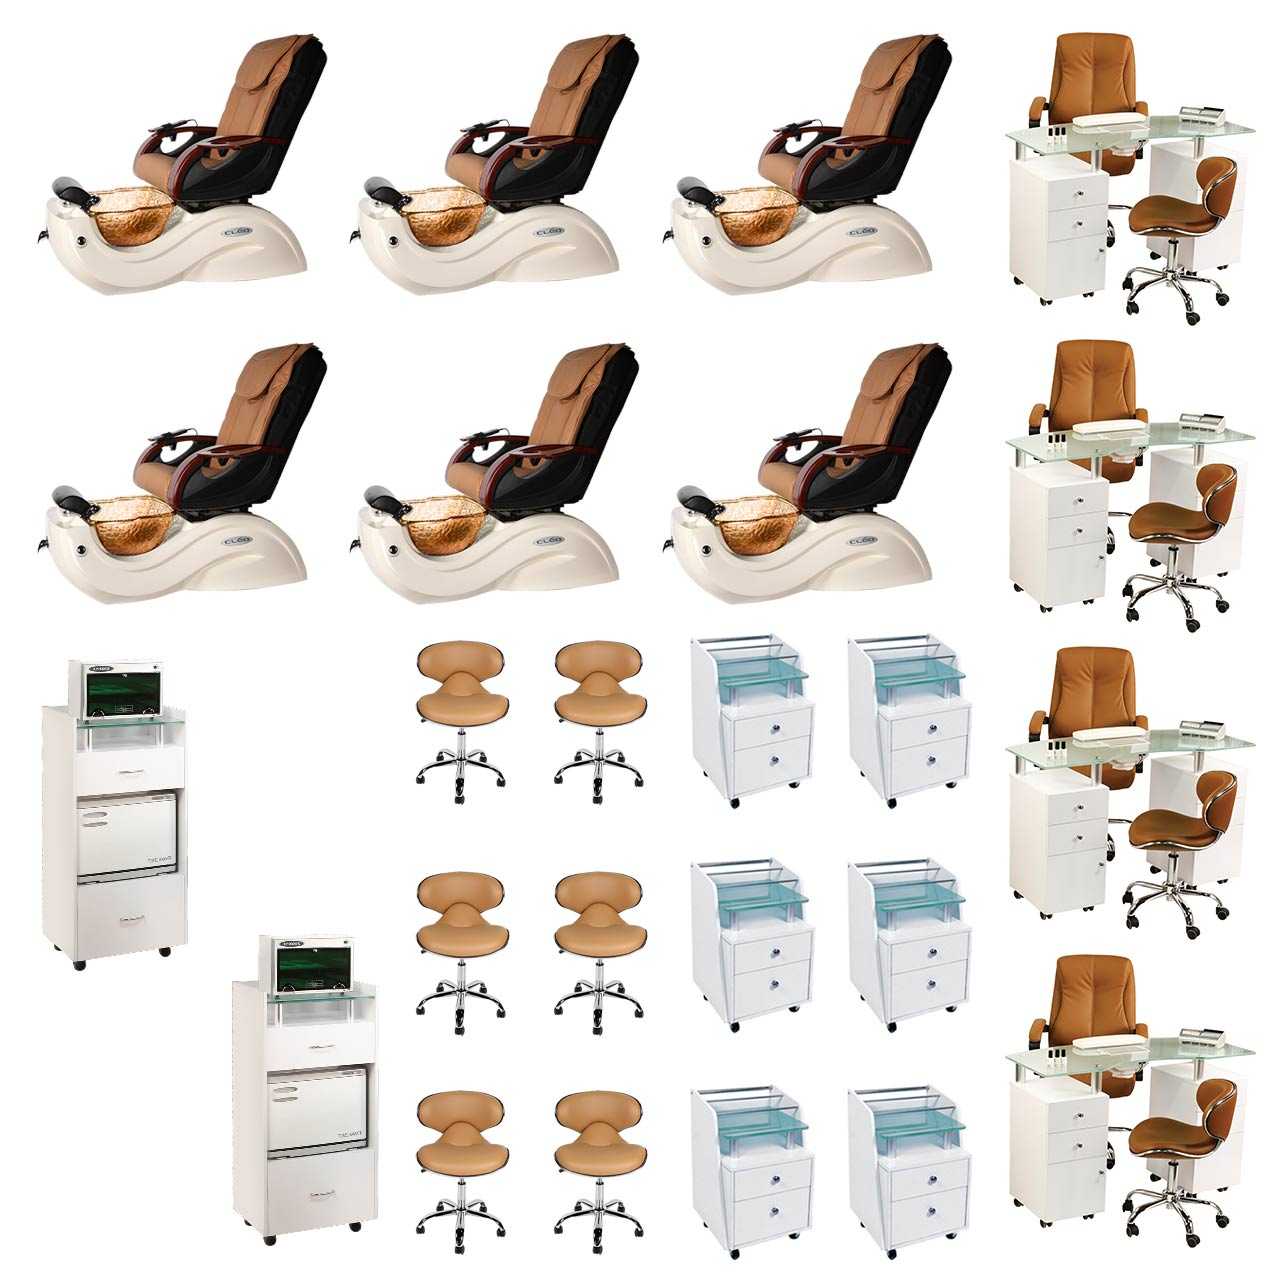 Mocha 6 Cleo GX Nail Salon Furniture Package Deal With 4 Manicure Stations  main product image